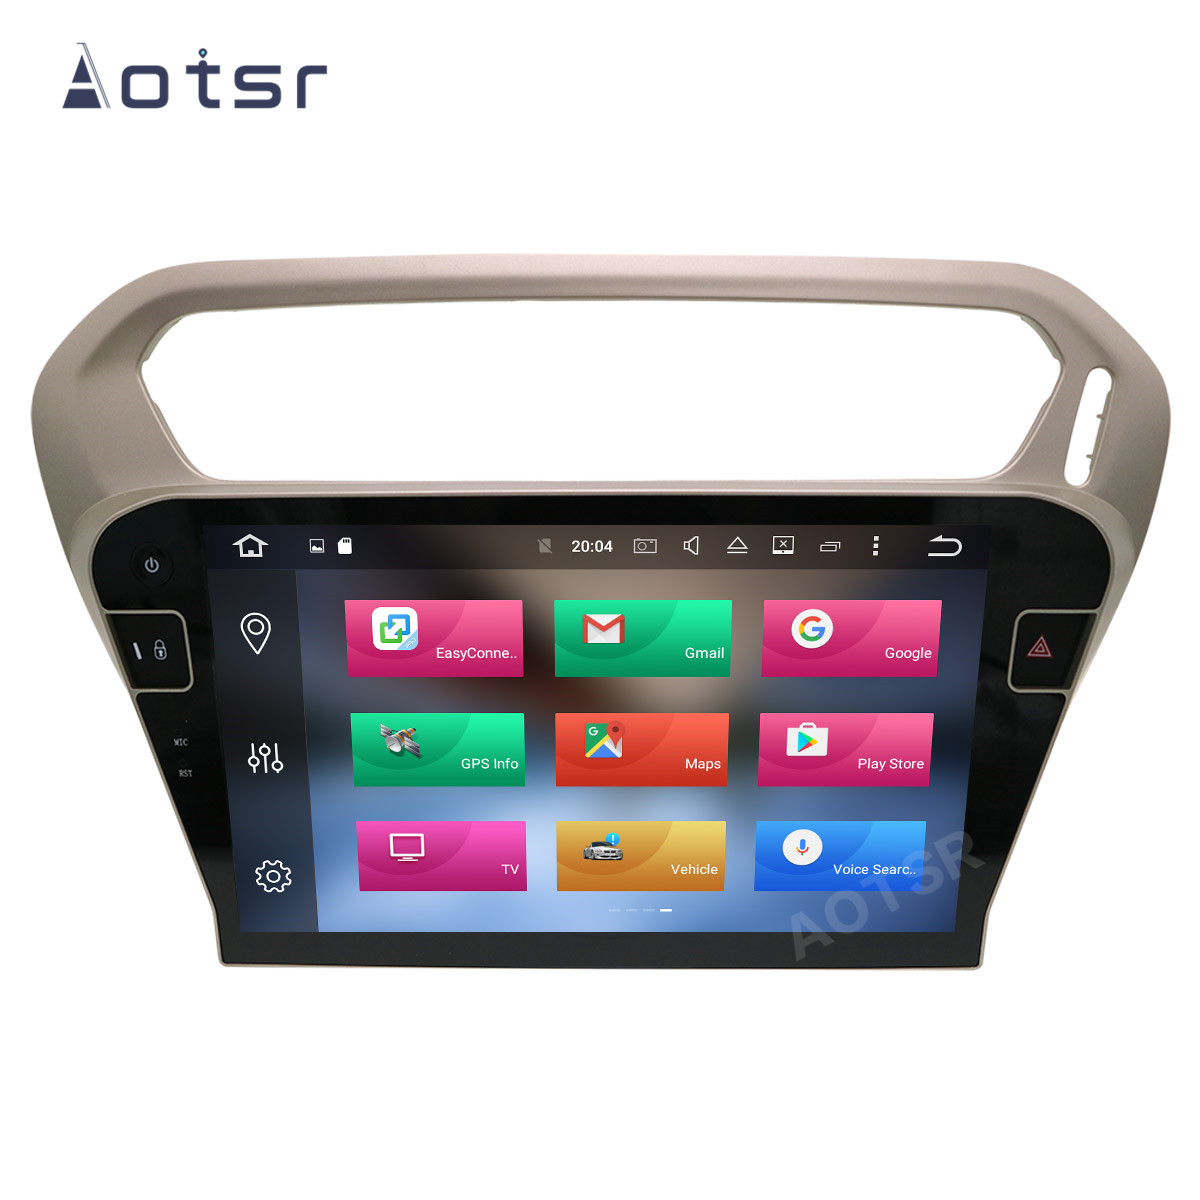 AOTSR 2 Din Android 10 Car Radio For <font><b>Peugeot</b></font> <font><b>301</b></font> 2013 - 2016 Multimedia Player Auto GPS Navigation DSP IPS Carplay AutoRadio image